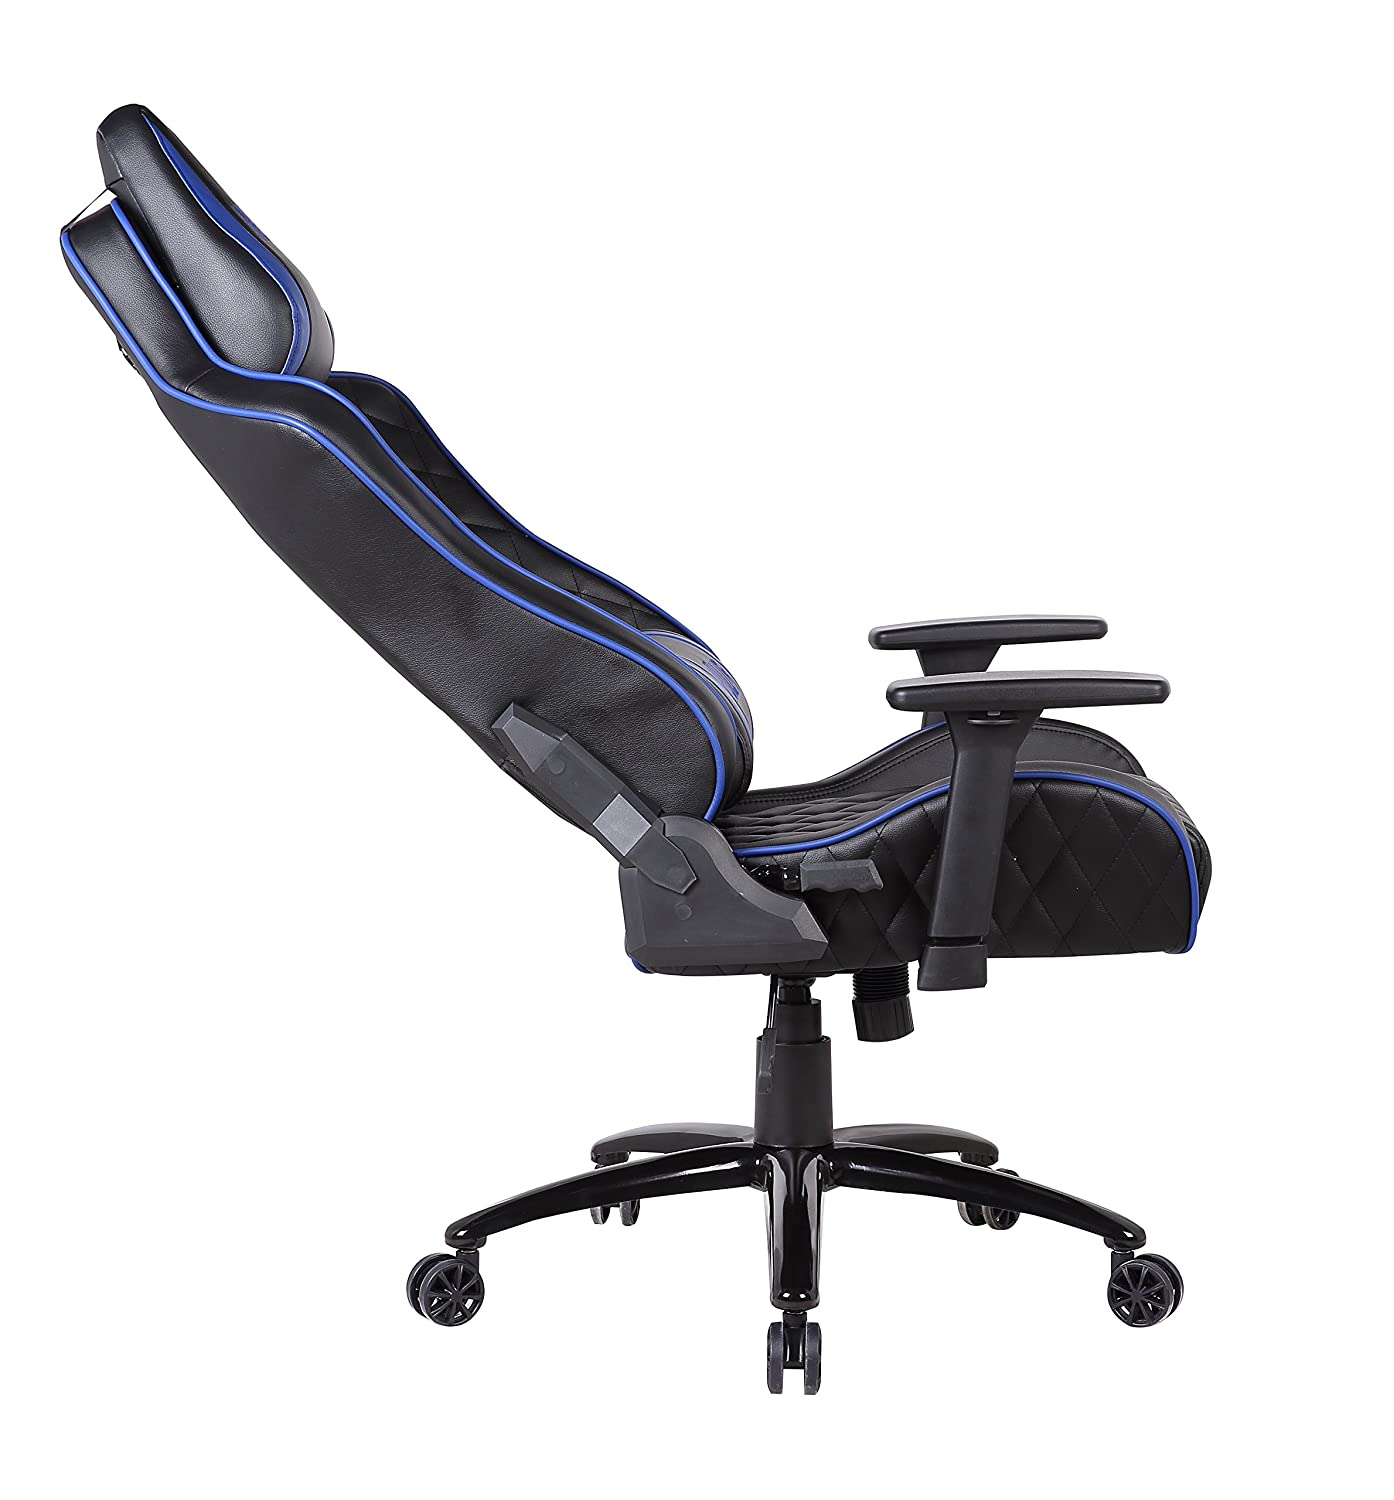 Amazon HULLR Gaming Racing puter fice Chair Executive